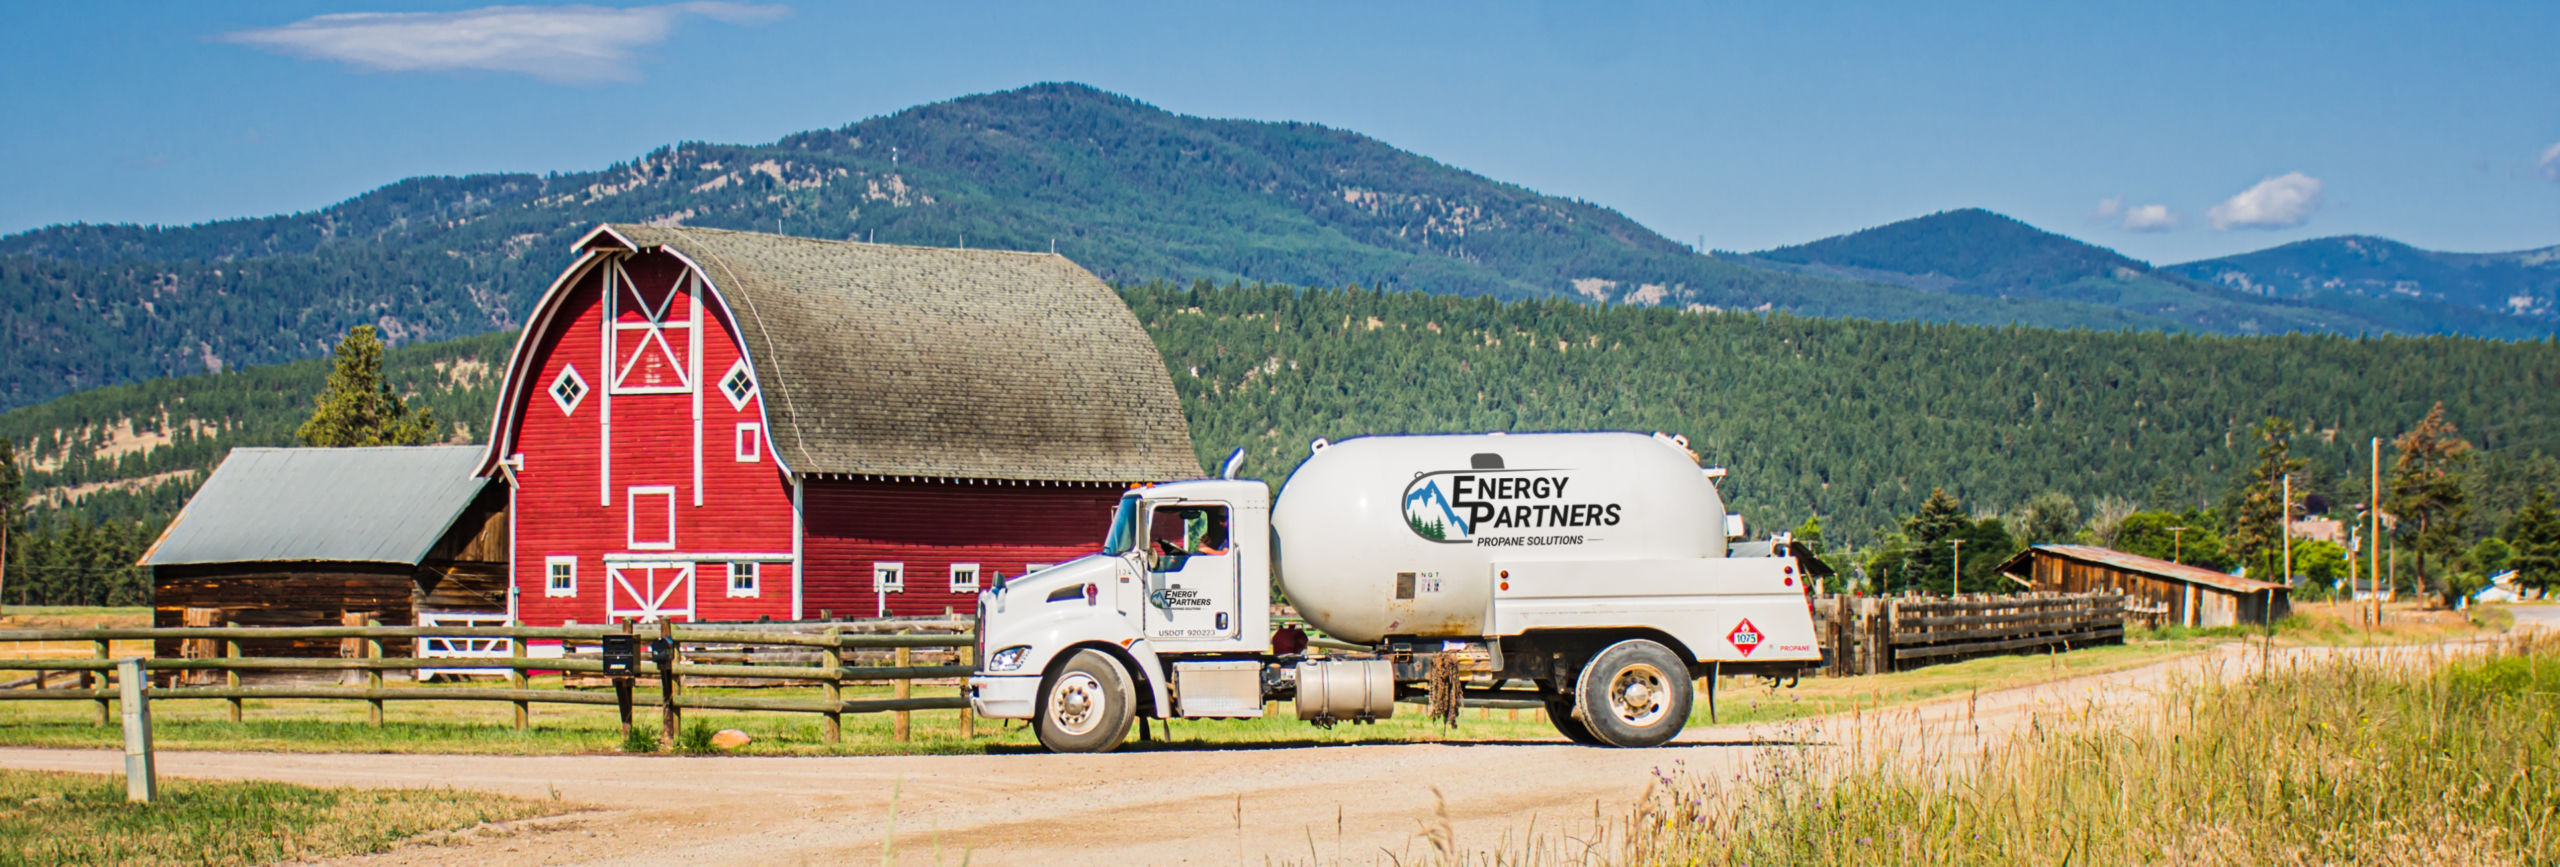 Energy Partners propane tank pulling up to barn with hills in the background